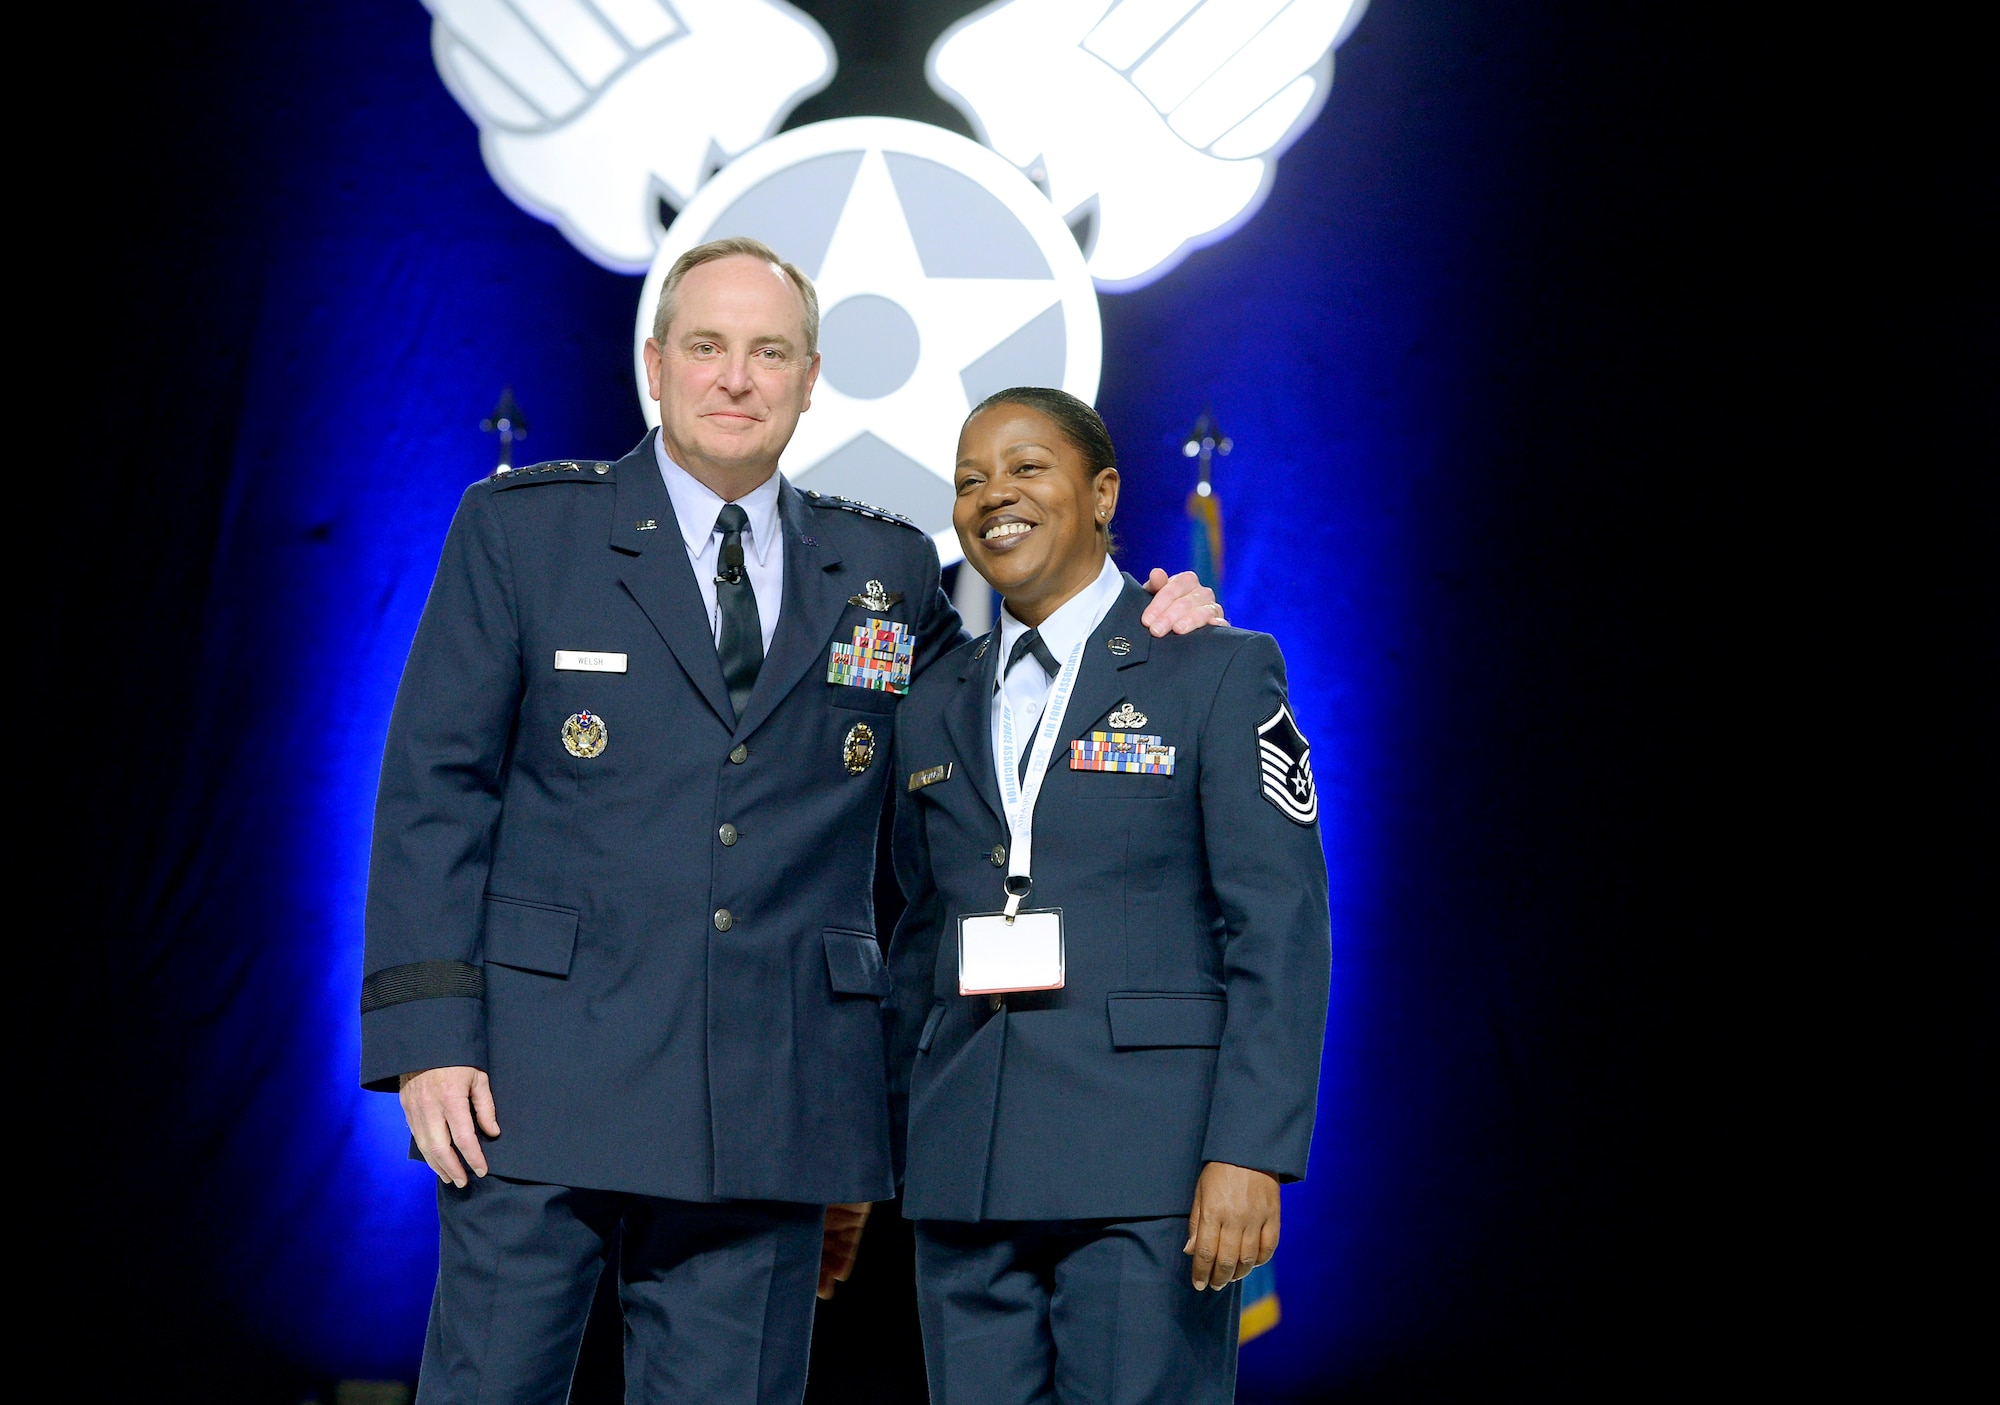 Air Force Chief of Staff Gen. Mark A. Welsh III recognizes Master Sgt. Toni Worthey for her leadership and efforts as a noncommissioned officer in charge at Air Force Mortuary Affairs Operations at Dover Air Force Base, Del., during his keynote presentation on the state of the Air Force at the Air Force Association's Air and Space Conference and Technology Exposition in Washington, D.C., Sept. 18, 2012.    (U.S. Air Force photo/Scott M. Ash)